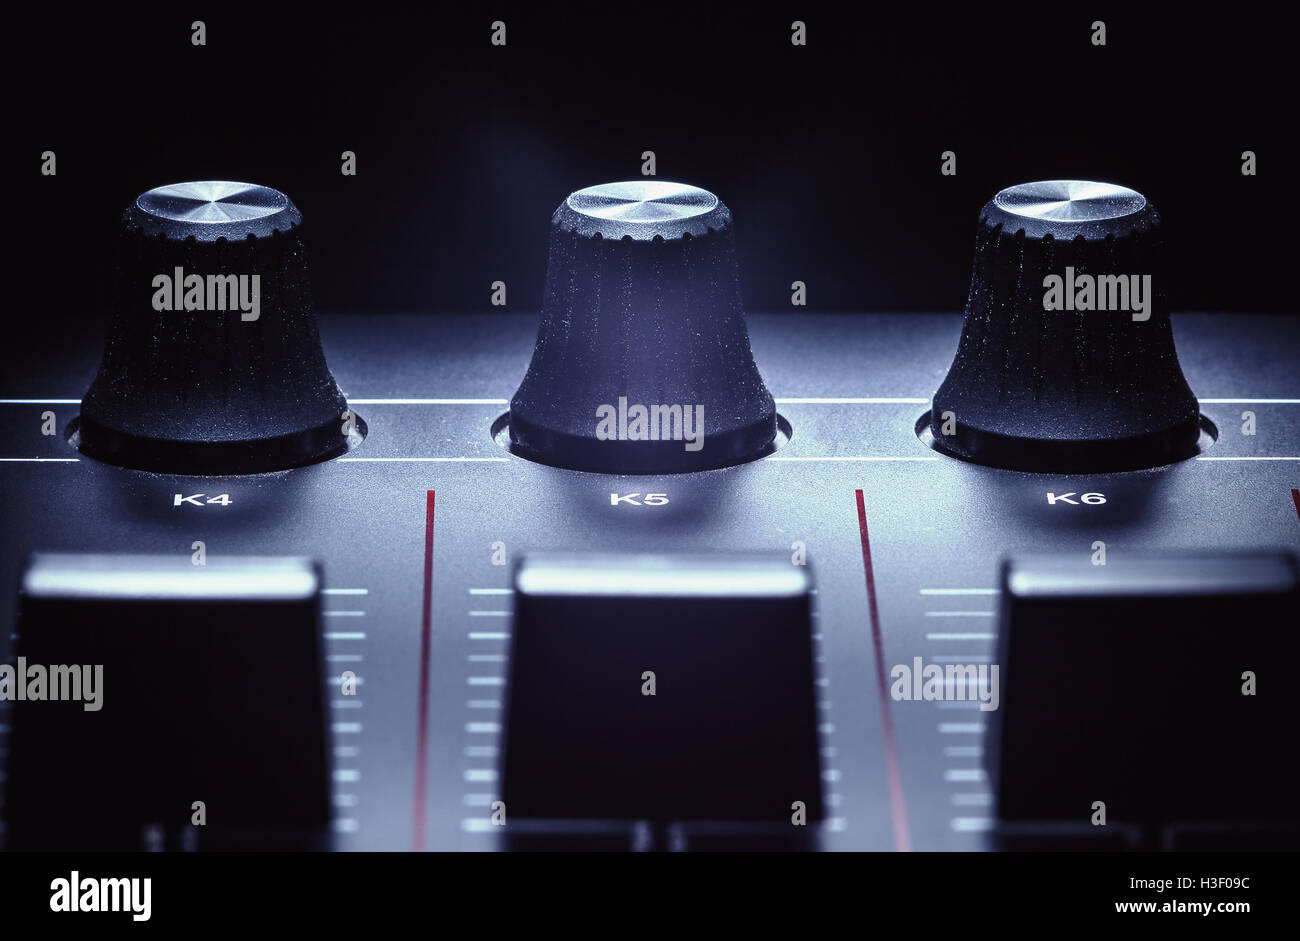 Details of a modern midi controller, view on sliders and knobs. - Stock Image